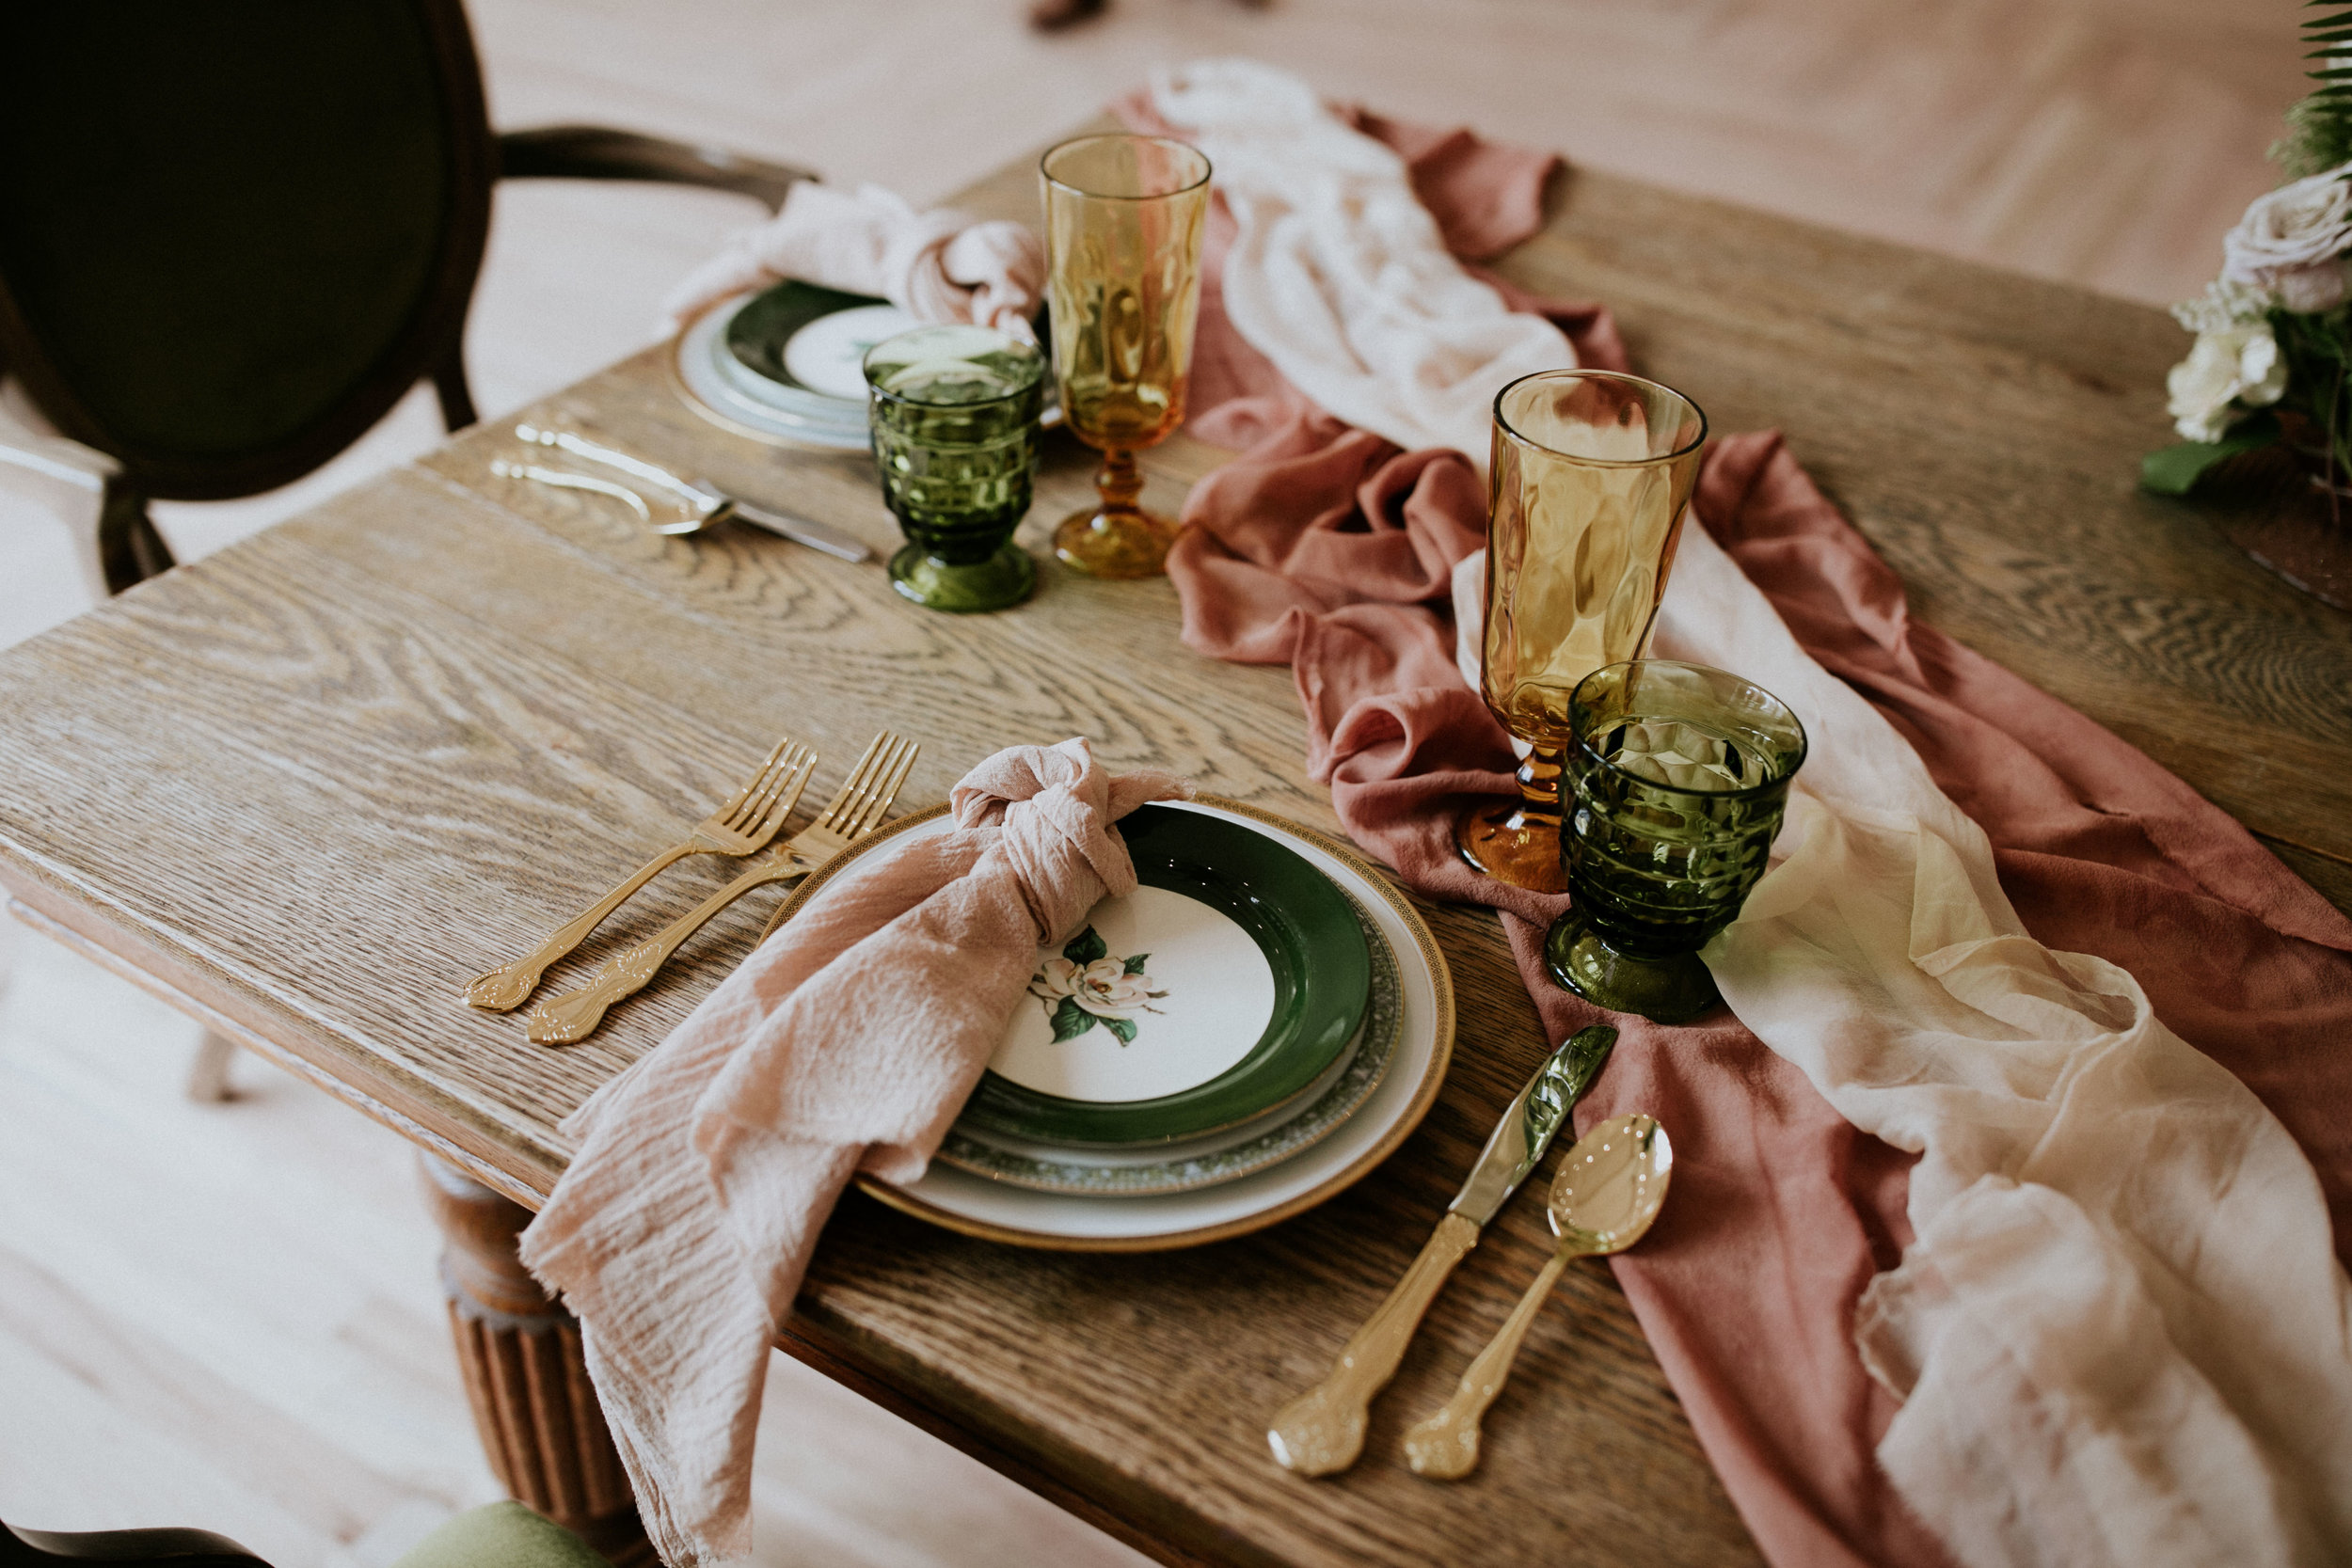 Rosemarine Textiles  blush pink cotton gauze napkins ,  blush pink silk chiffon table runner  and  terracotta silk chiffon table runner